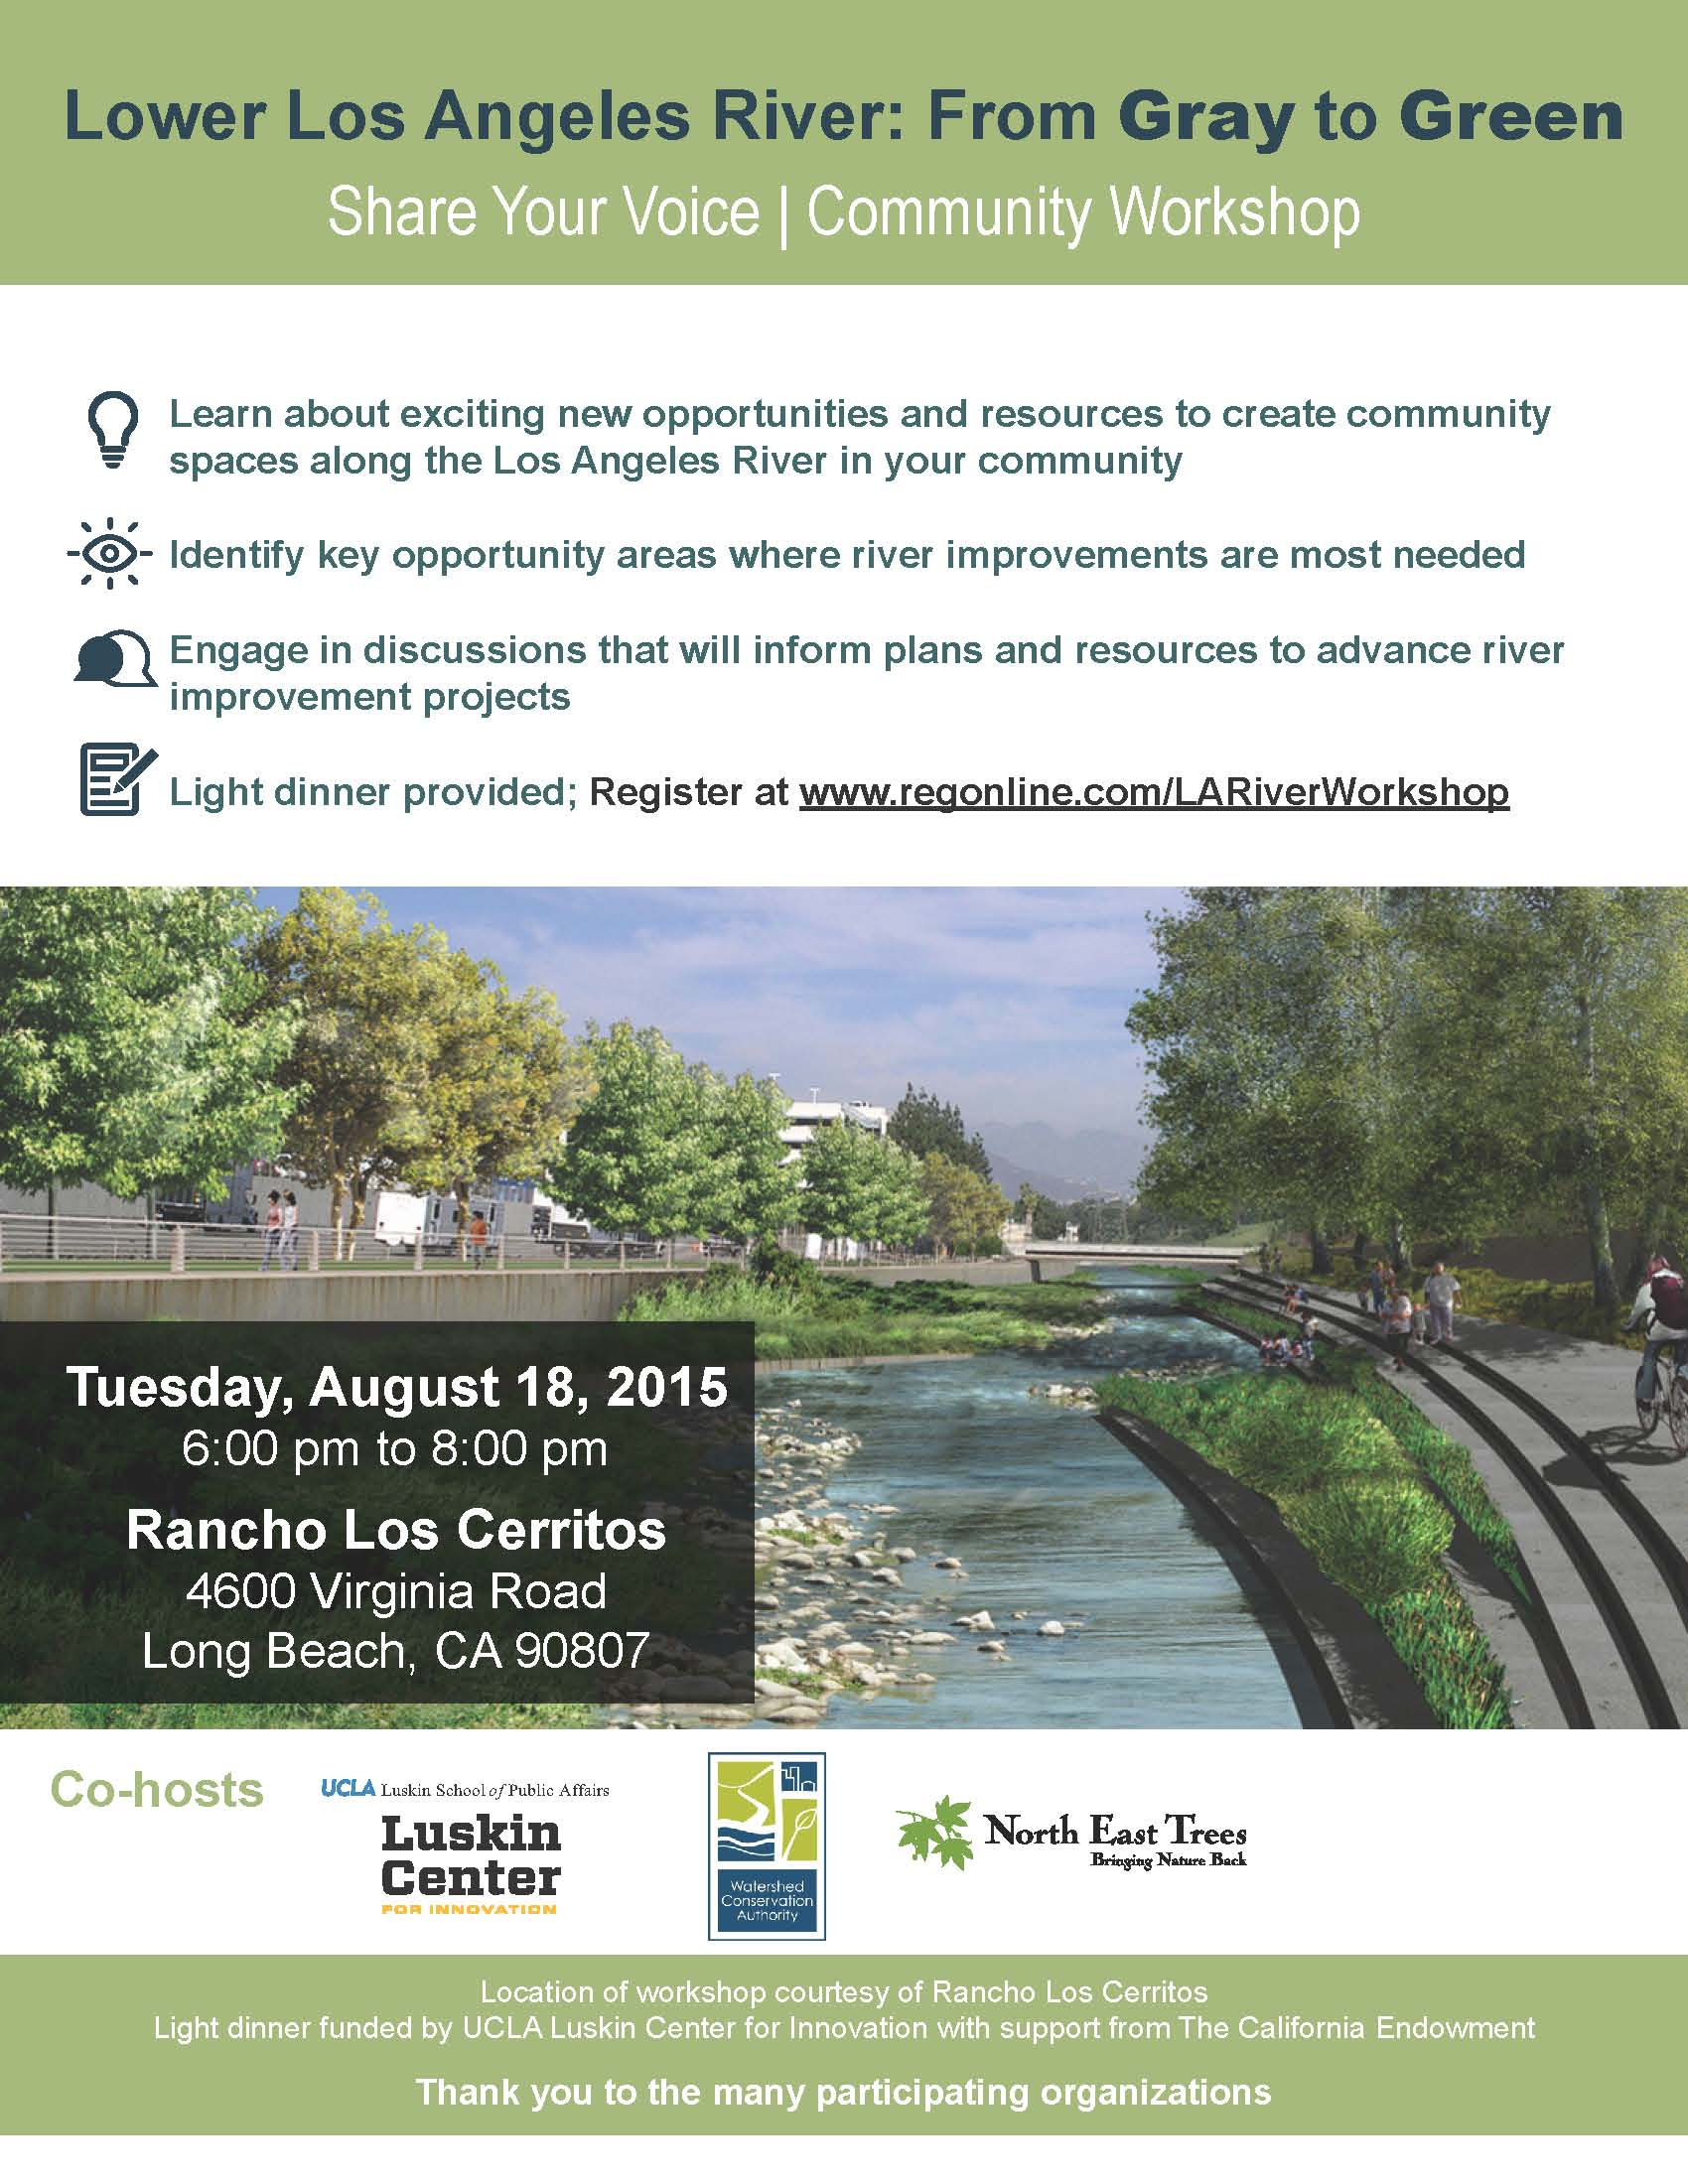 Lower_LA_River_Workshop_8-18-15_-_Flyer.jpg